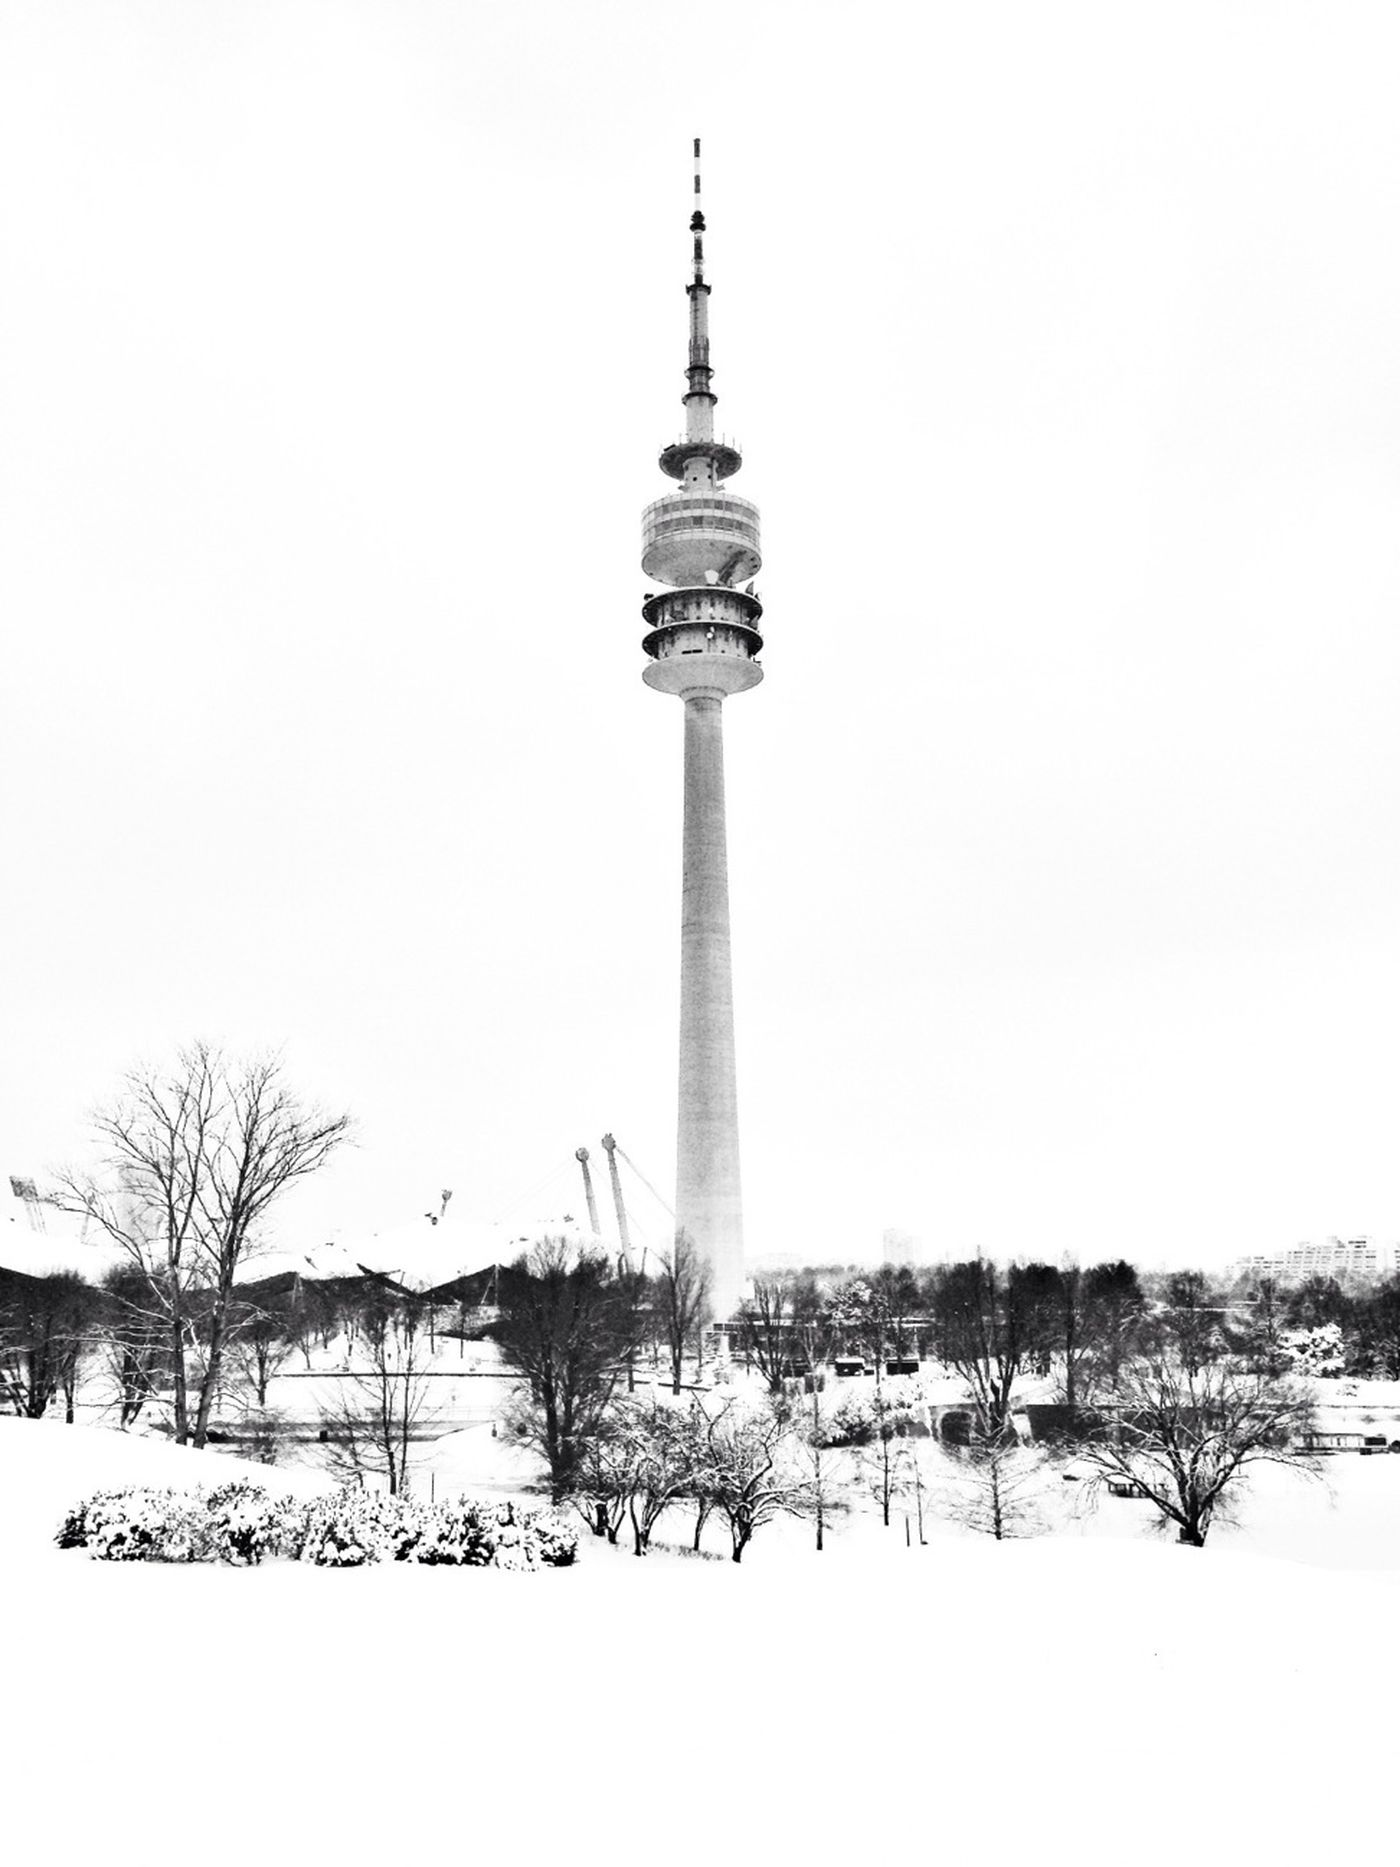 Olympiatrum stands alone in the white #olympiatrum #tower #olympics #park #winter #snow #munich #münchen #germany